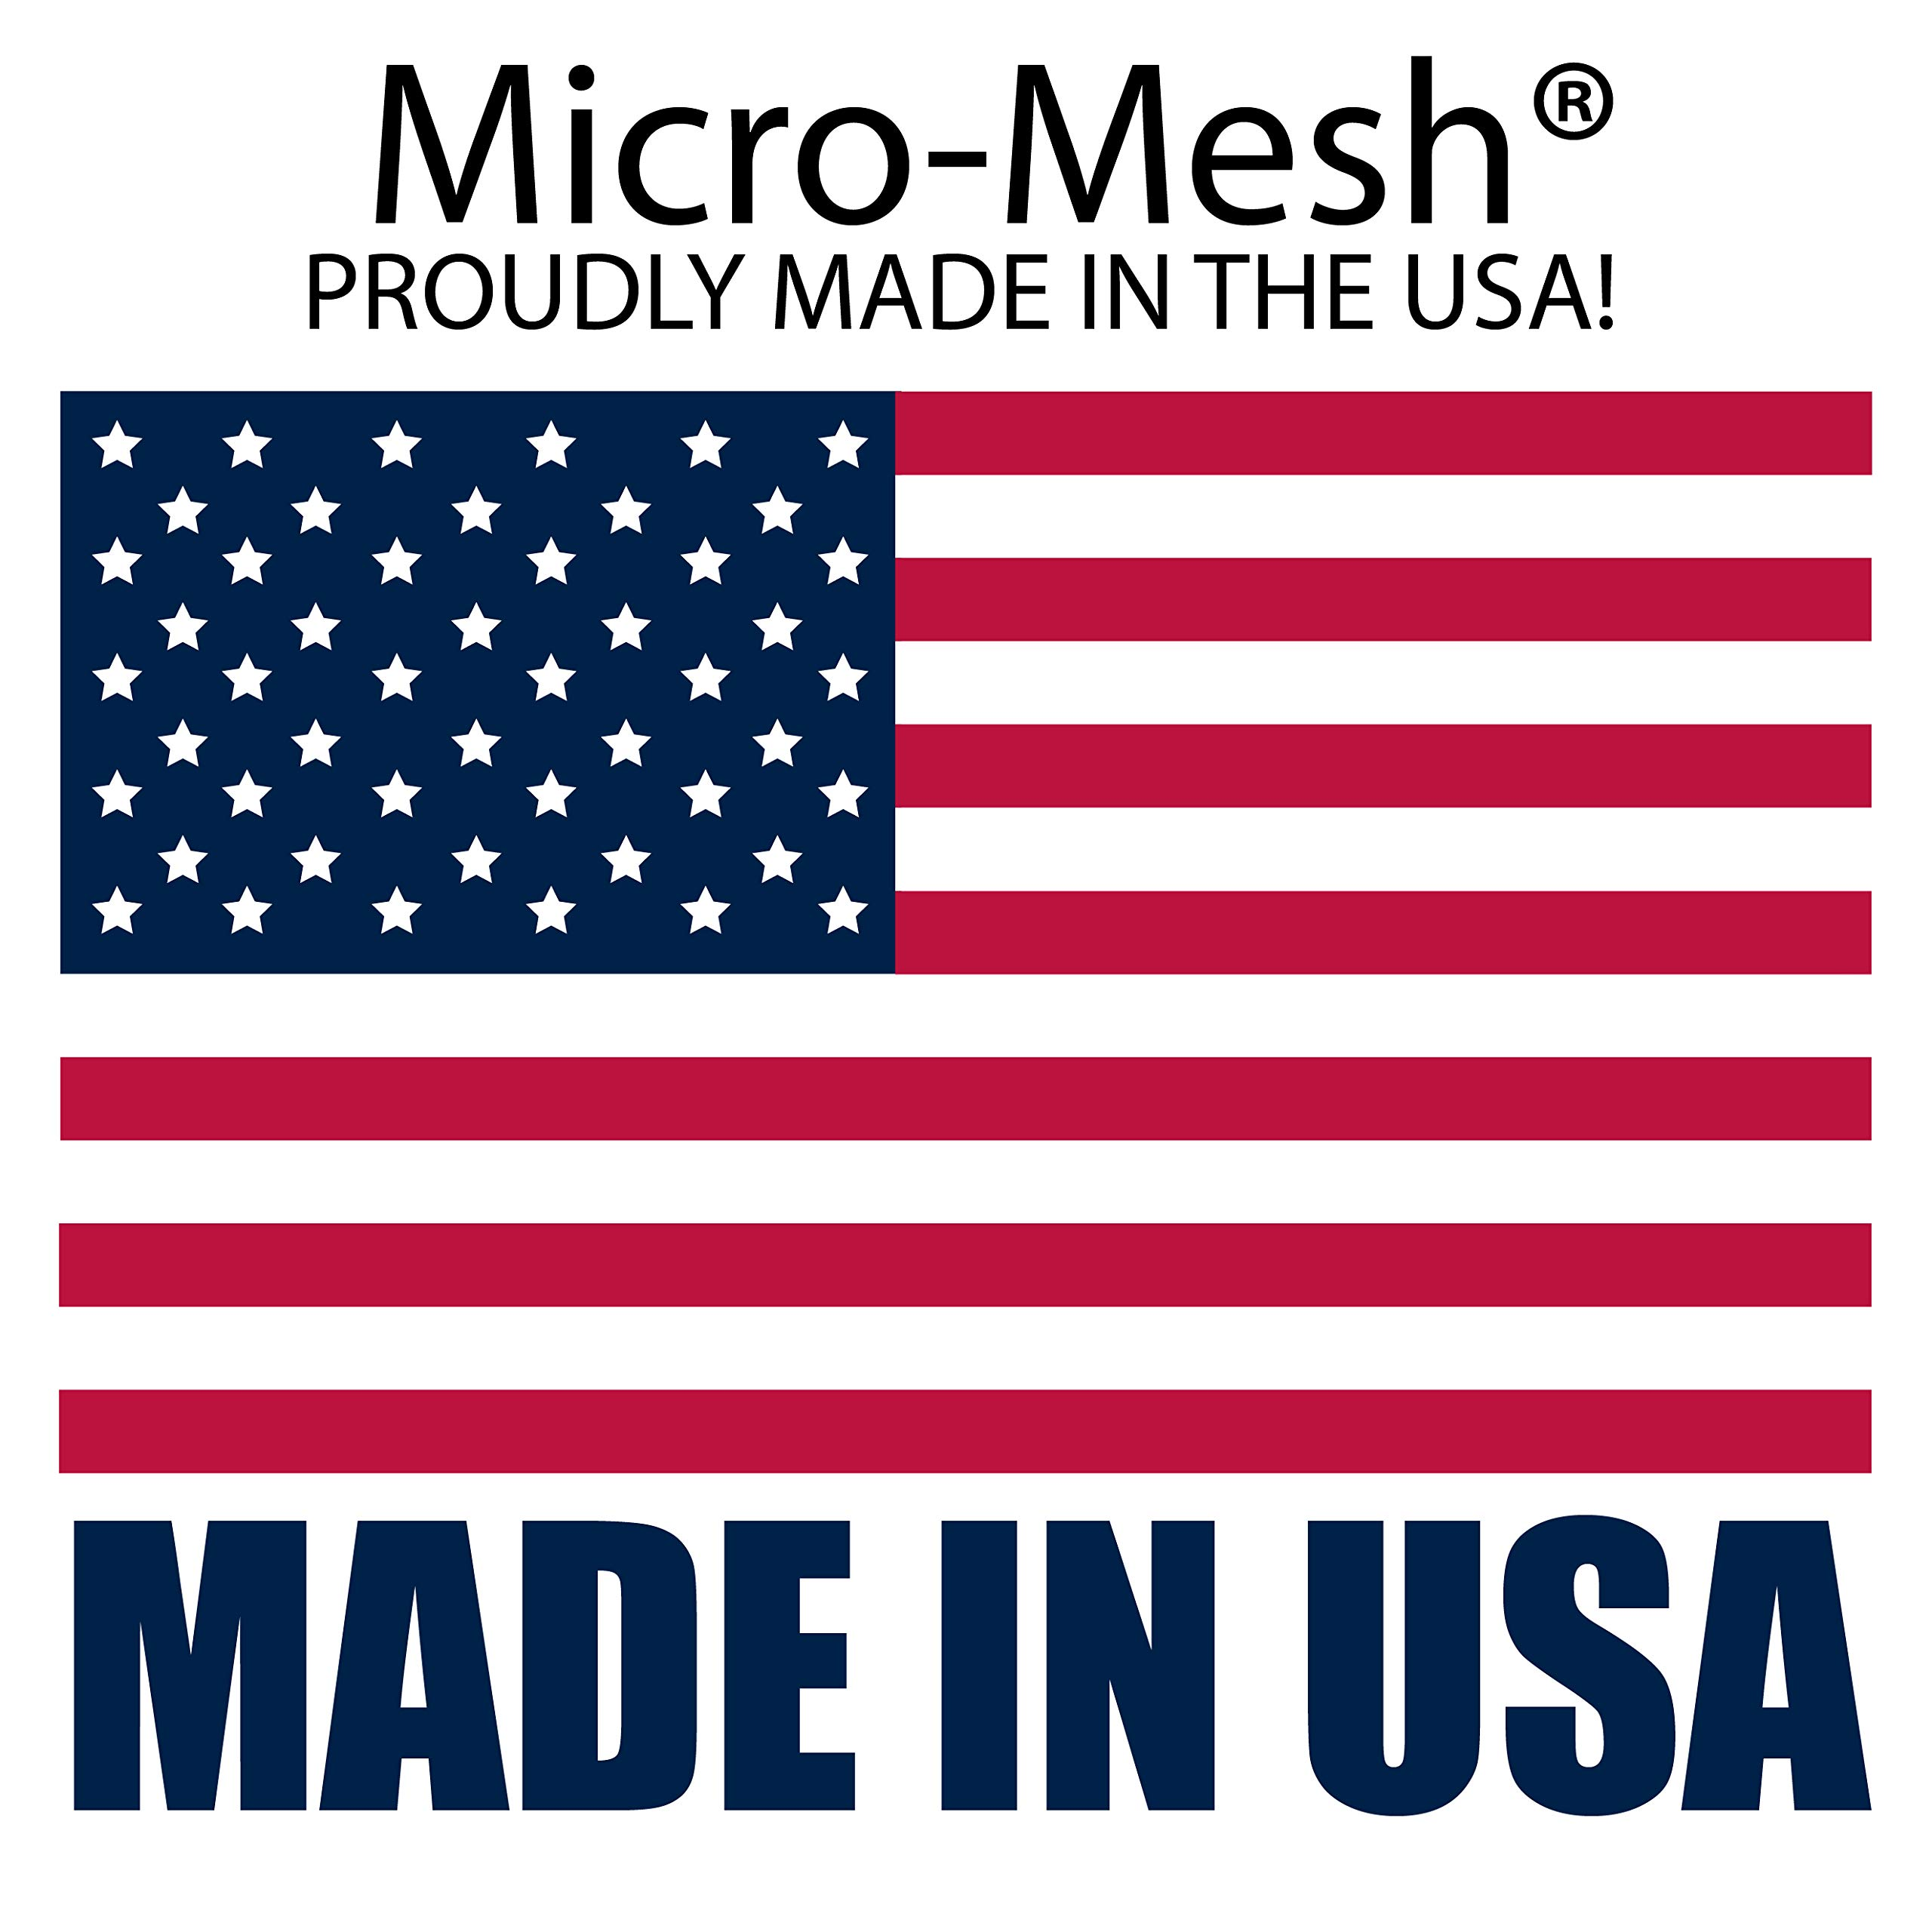 Ideal for Pen /& Bottle Stopper Turning Perfect for Cycle Sanding Acrylic Materials 9 Micro Mesh Pads w//Dispenser 2 inch by 2 inch Micro-Mesh Soft Touch Sanding Pads w//Galvanized Steel Dispenser